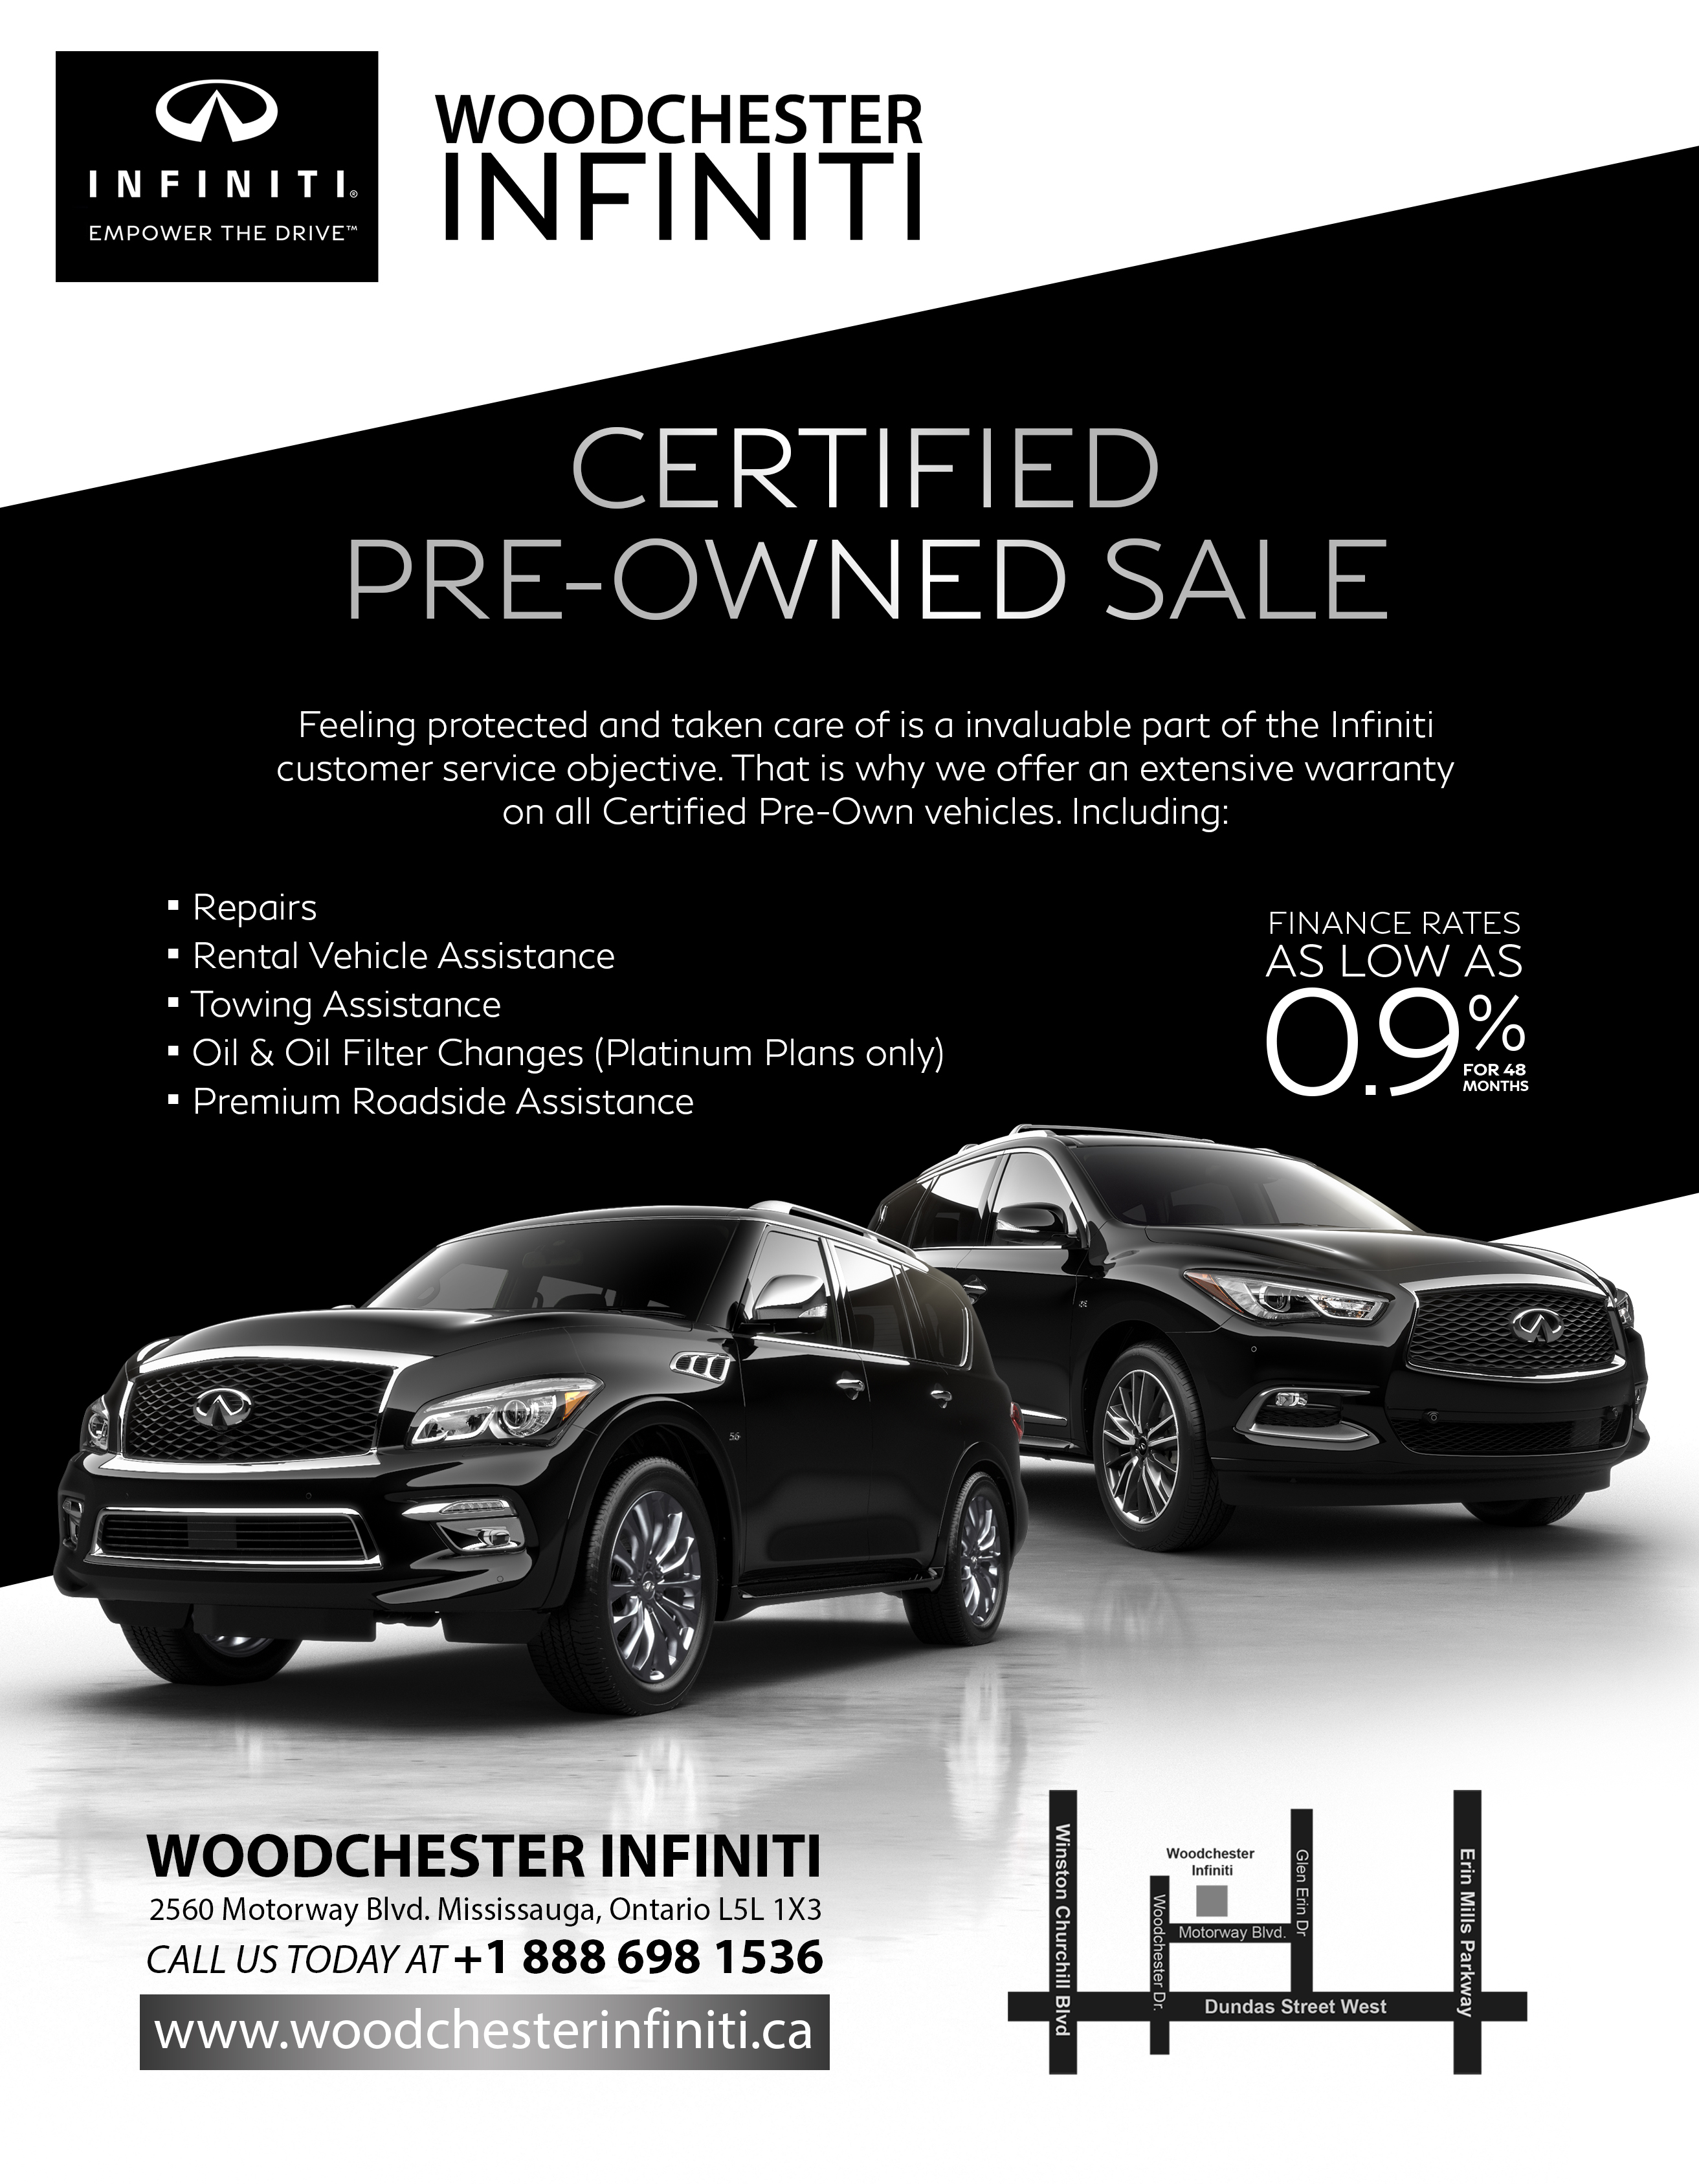 empower owned drive new promoposter infinity infiniti all woodchesterinfiniti the with pre